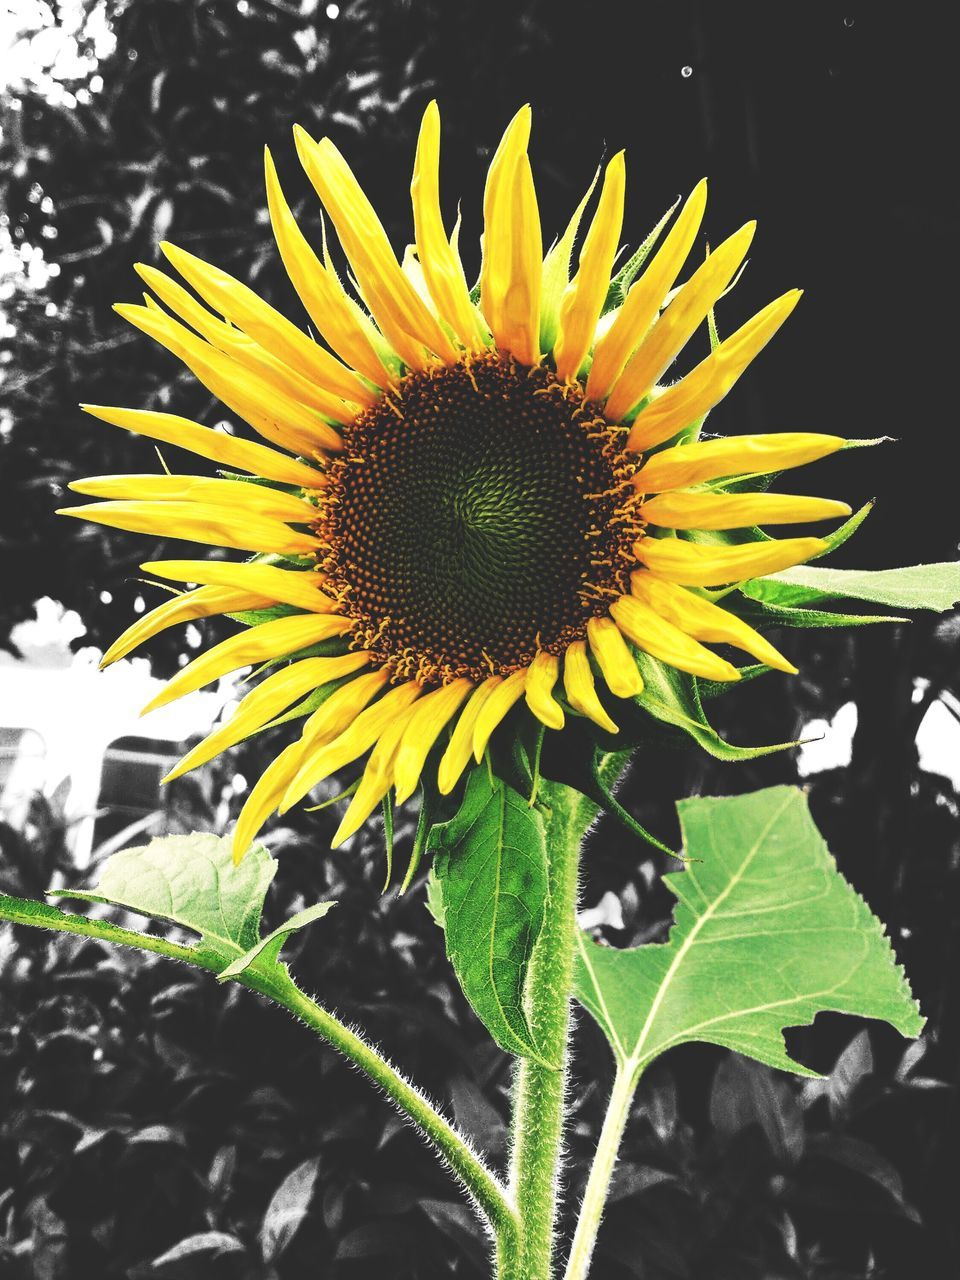 flower, yellow, fragility, petal, freshness, nature, beauty in nature, sunflower, growth, flower head, pollen, plant, close-up, no people, outdoors, blooming, leaf, day